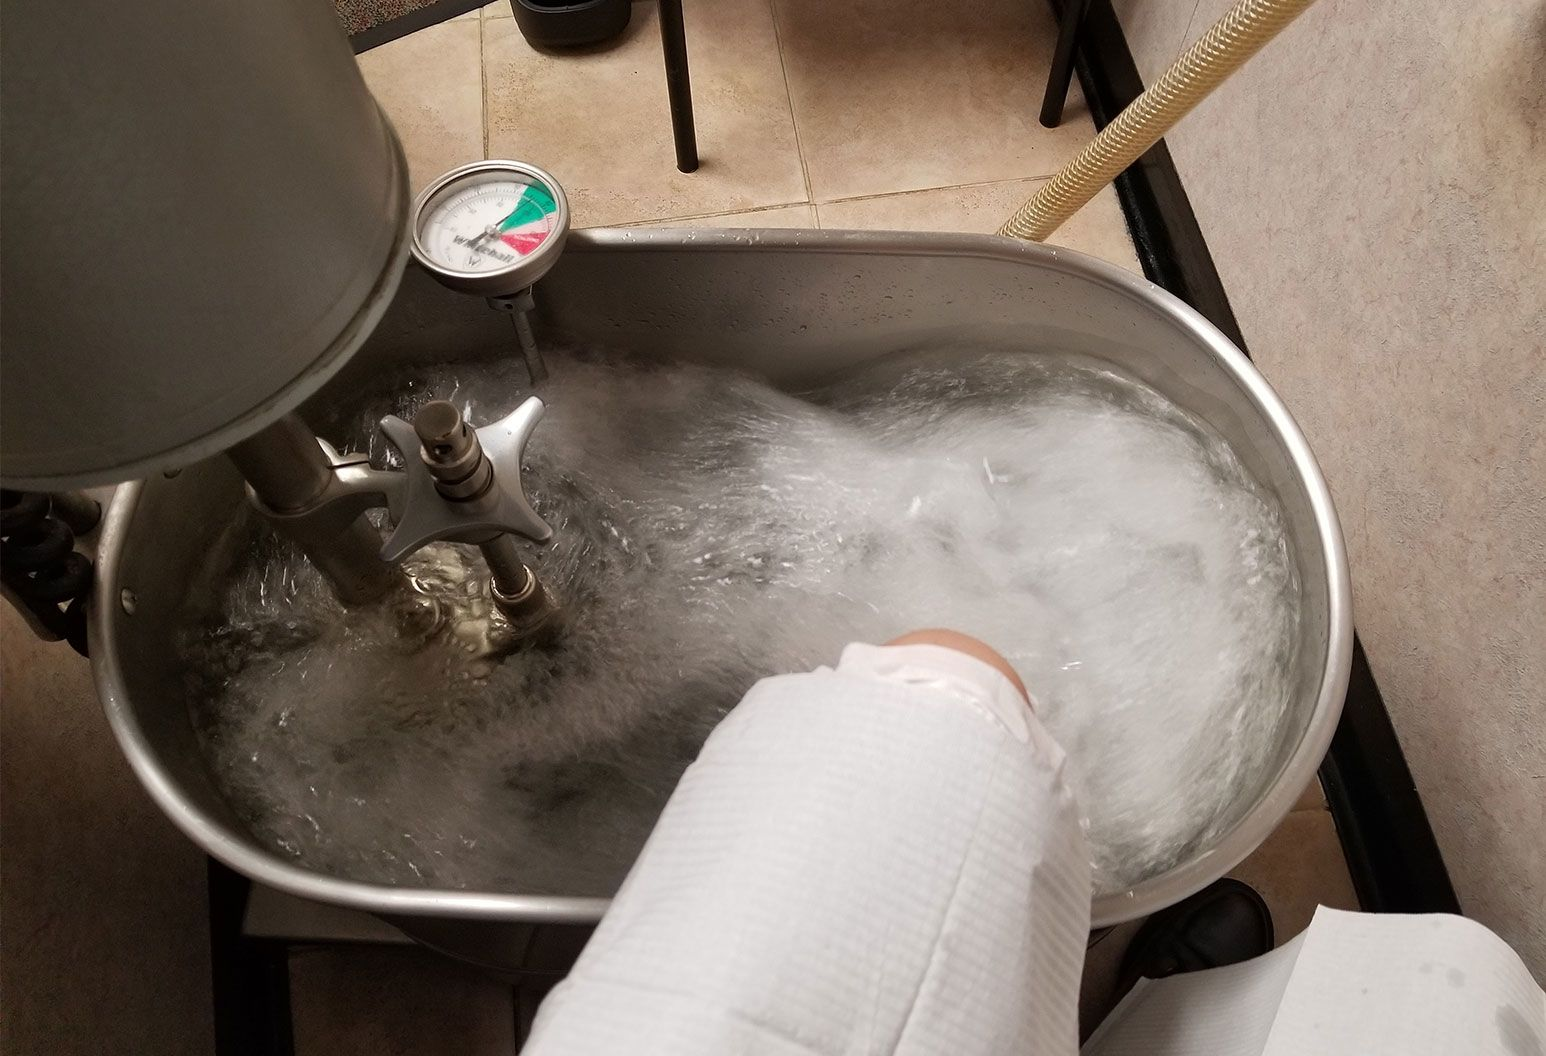 A foot is inside a silver tub filled with water. There are pipes and a gauge also in the tub causing as the water in the tub is bubbling up and whirlpooling around inside it.